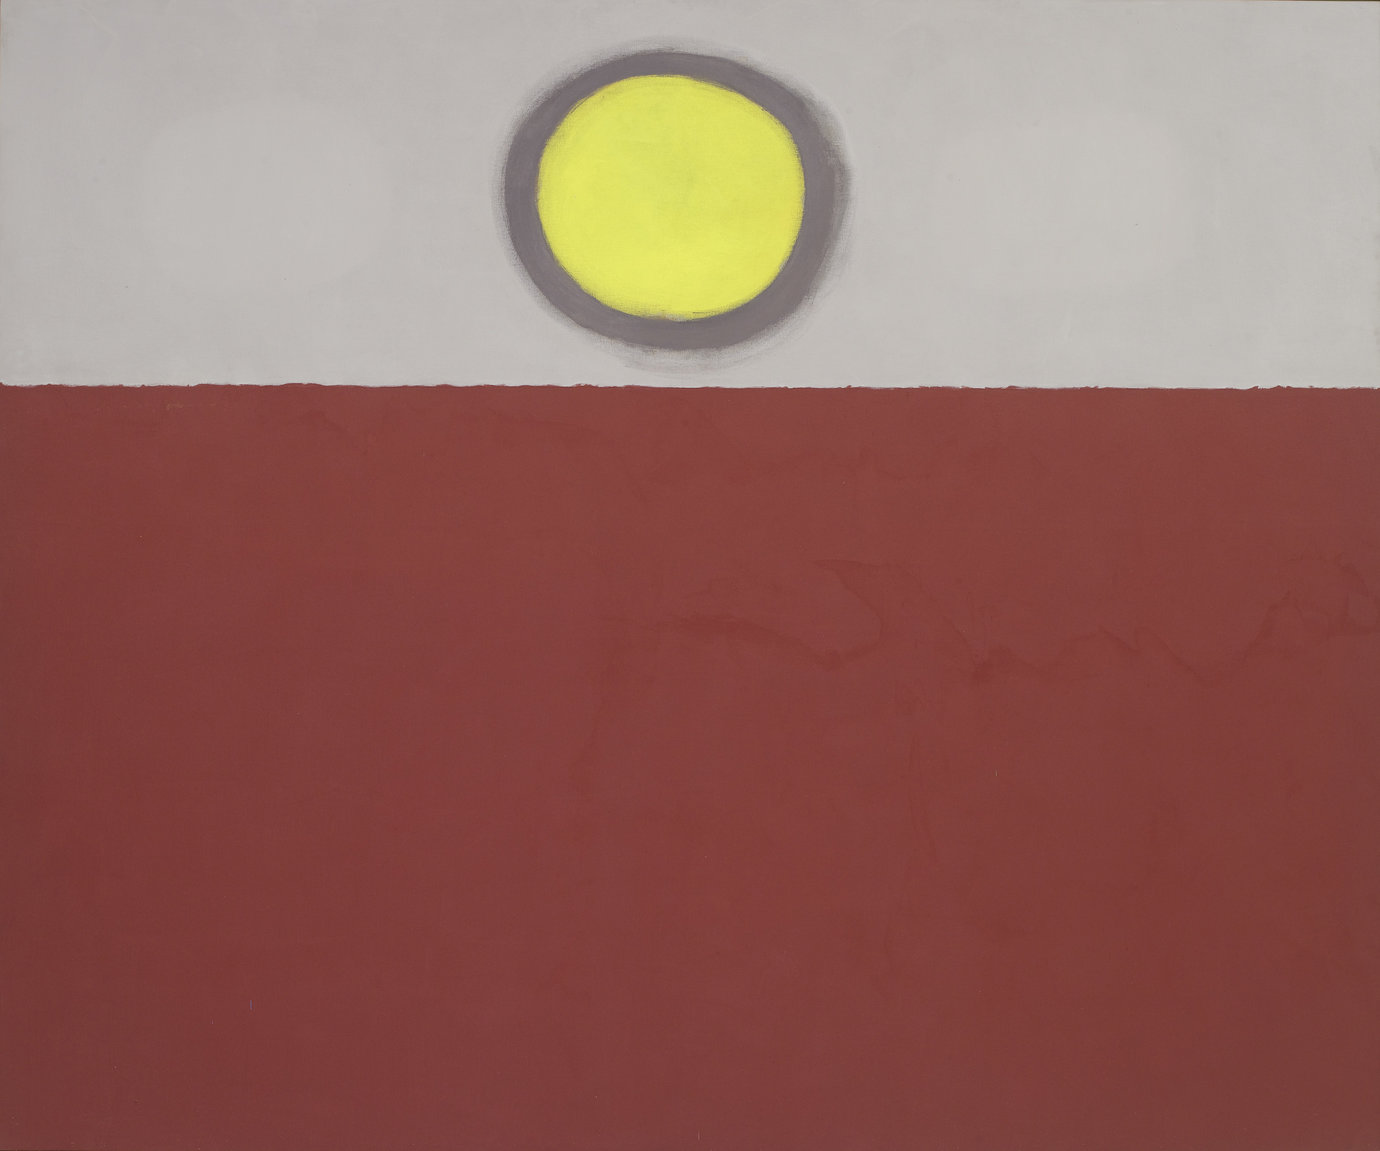 ", 1970. Acrylic on canvas, 7'6"" x 9' (2.29 x 2.74 m)."